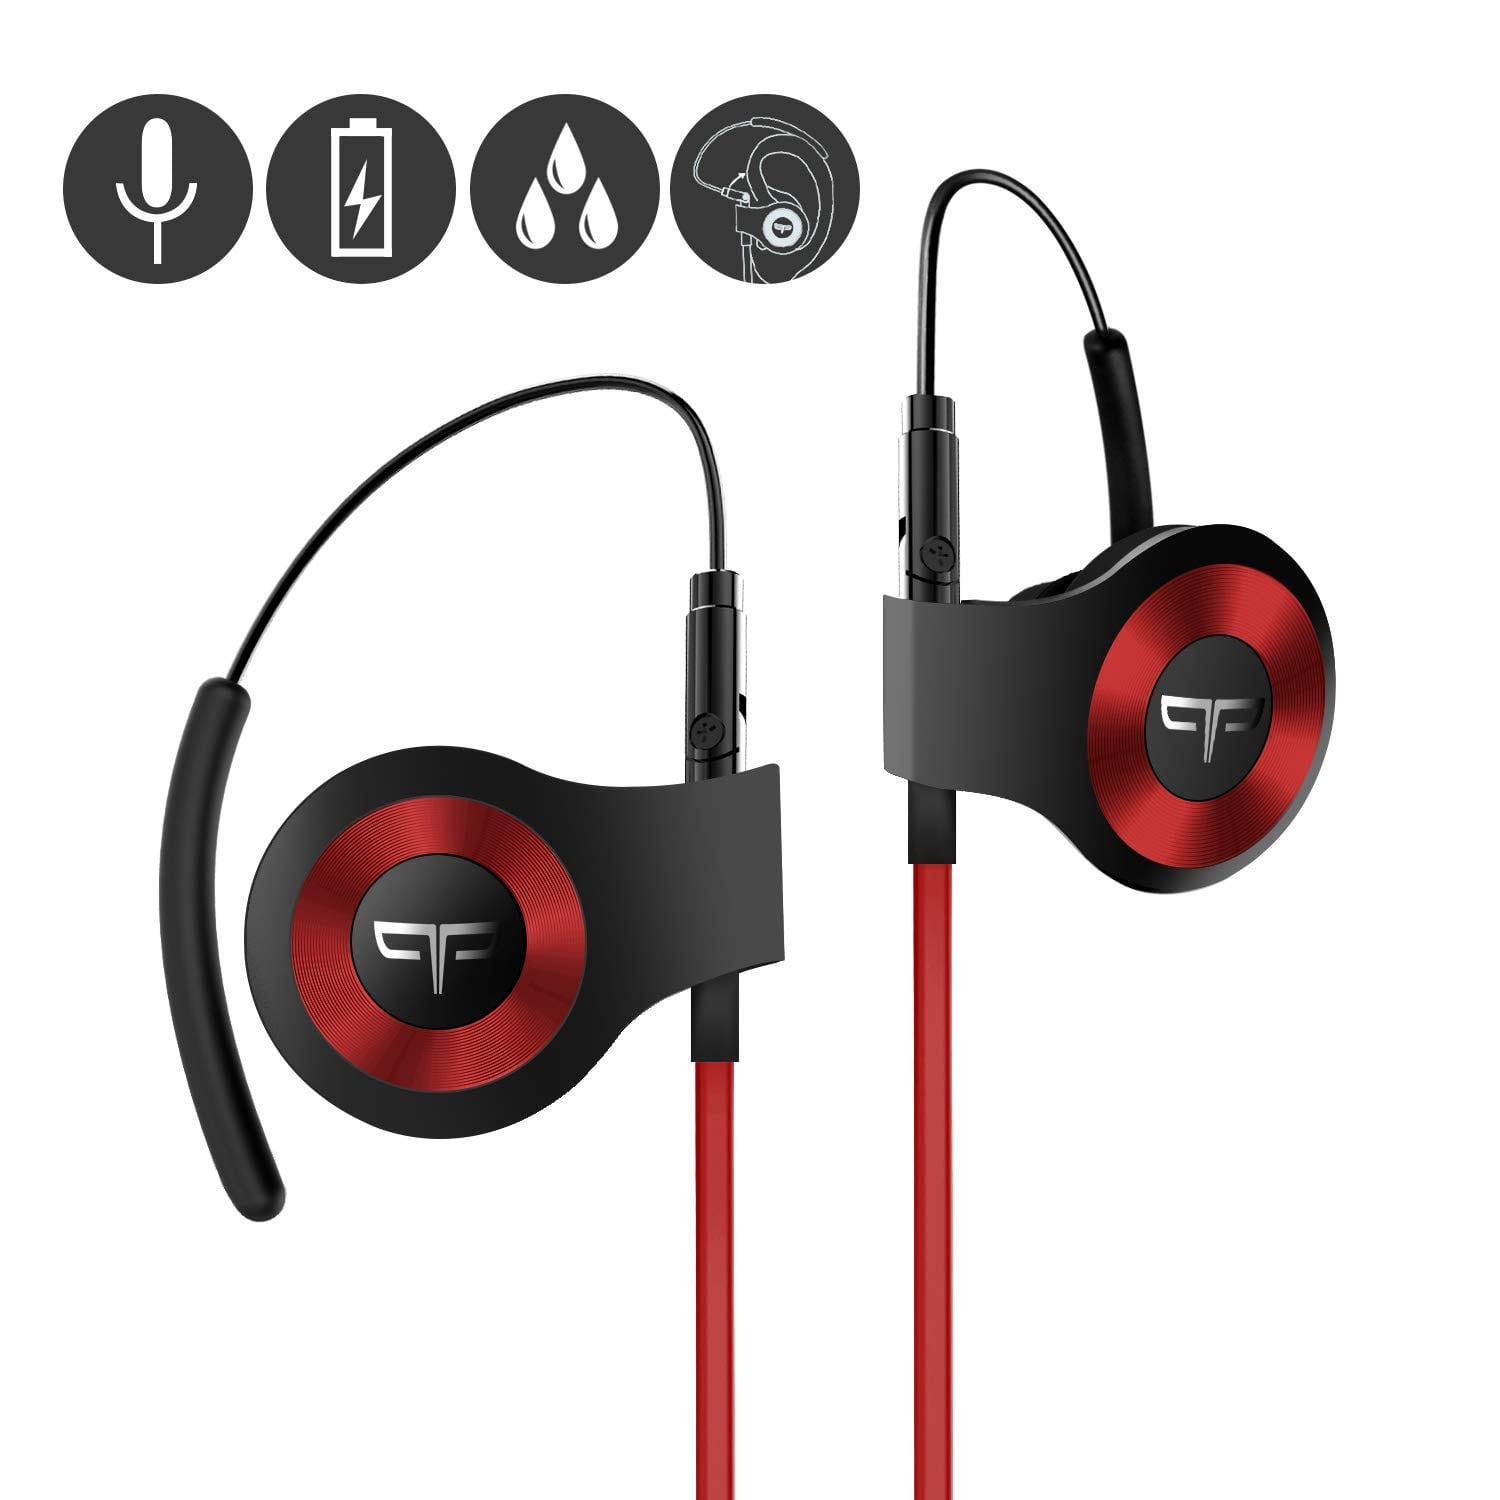 Origem HS-3 Bluetooth Wireless Earphons with DSP Audio Algorithm and True Voice Recognition for $59.4 + Free  Shipping